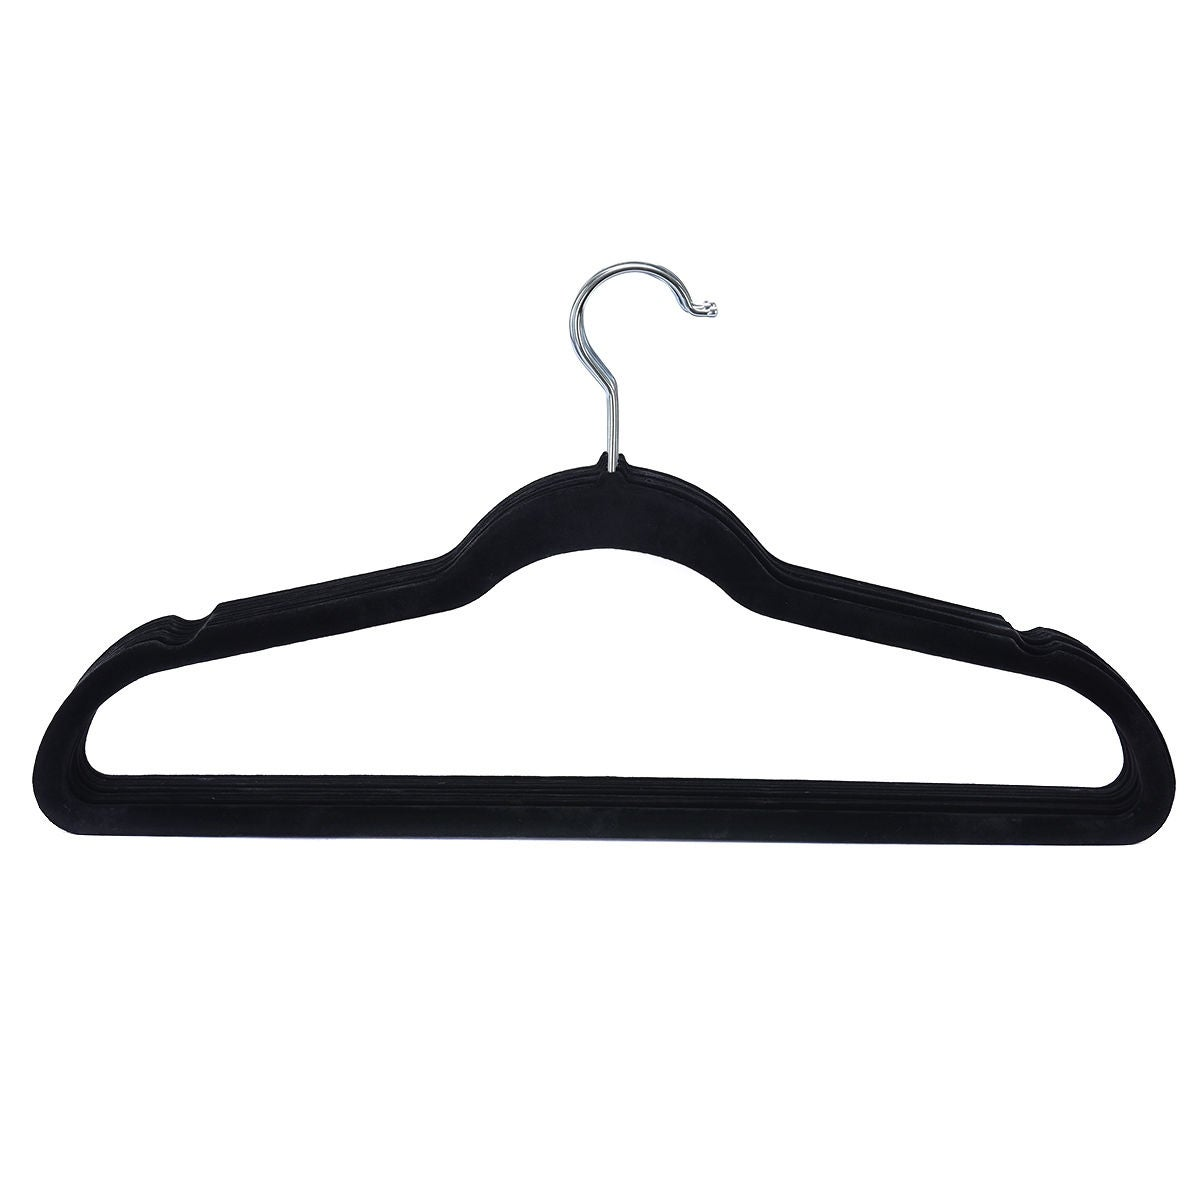 Costway 100pcs Velvet Clothes Suit Shirt Pants Hangers Hook Non Slip Storage Organize Black Free Shipping Today 16399324